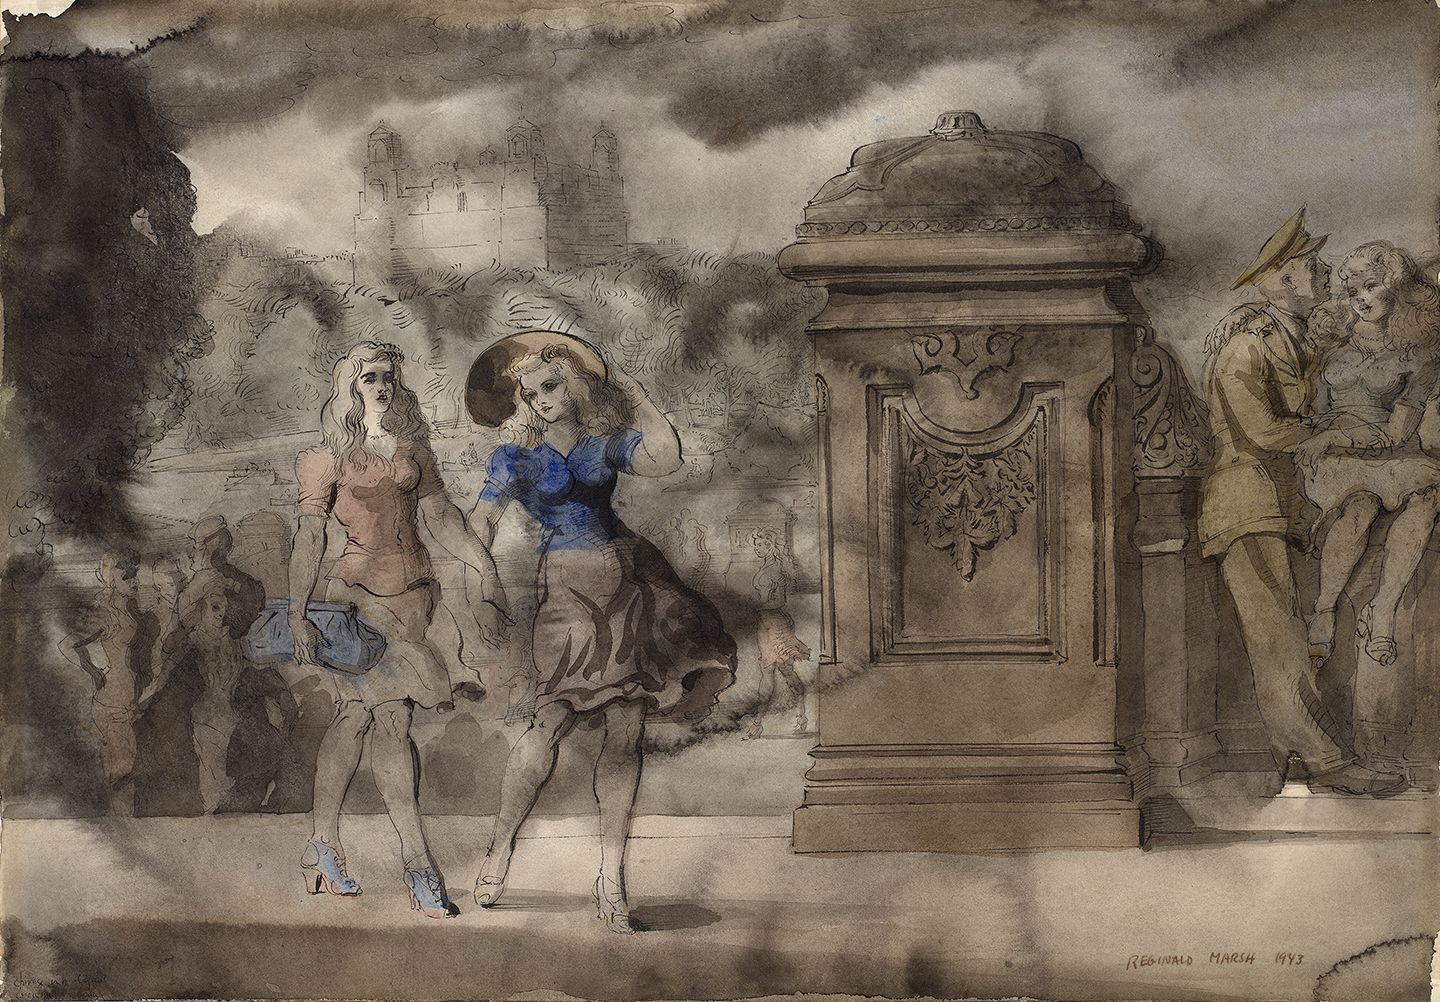 Reginald Marsh (1898-1954), Walking in the Park, 1943